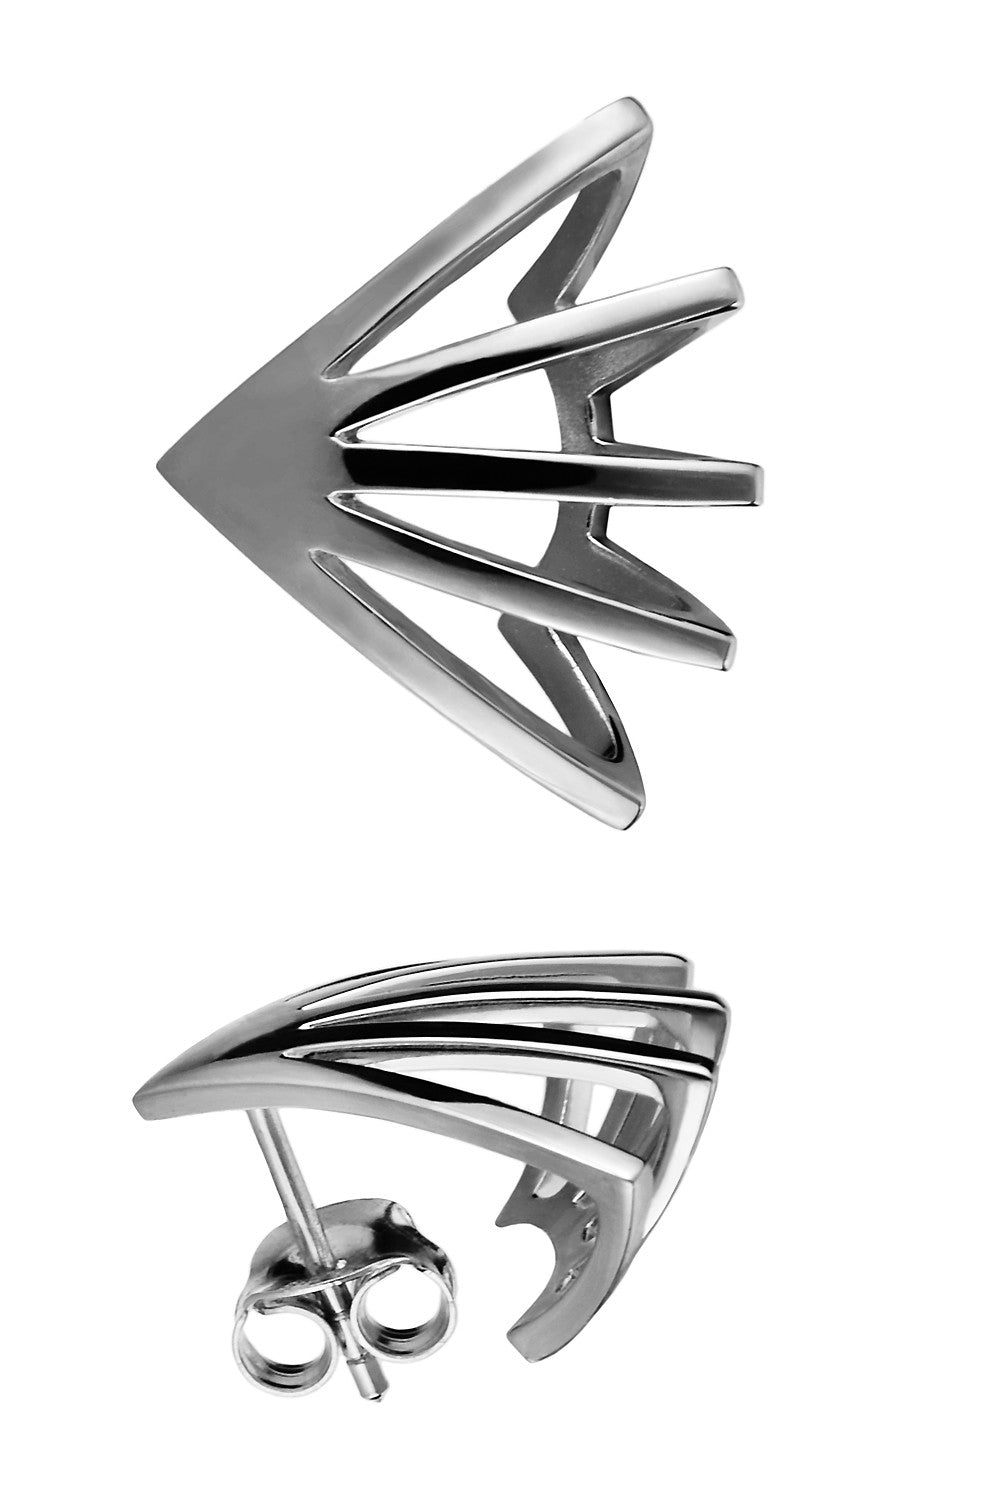 Sterling silver fan shape statement earrings - SELFIE STORE BARCELONA, SL